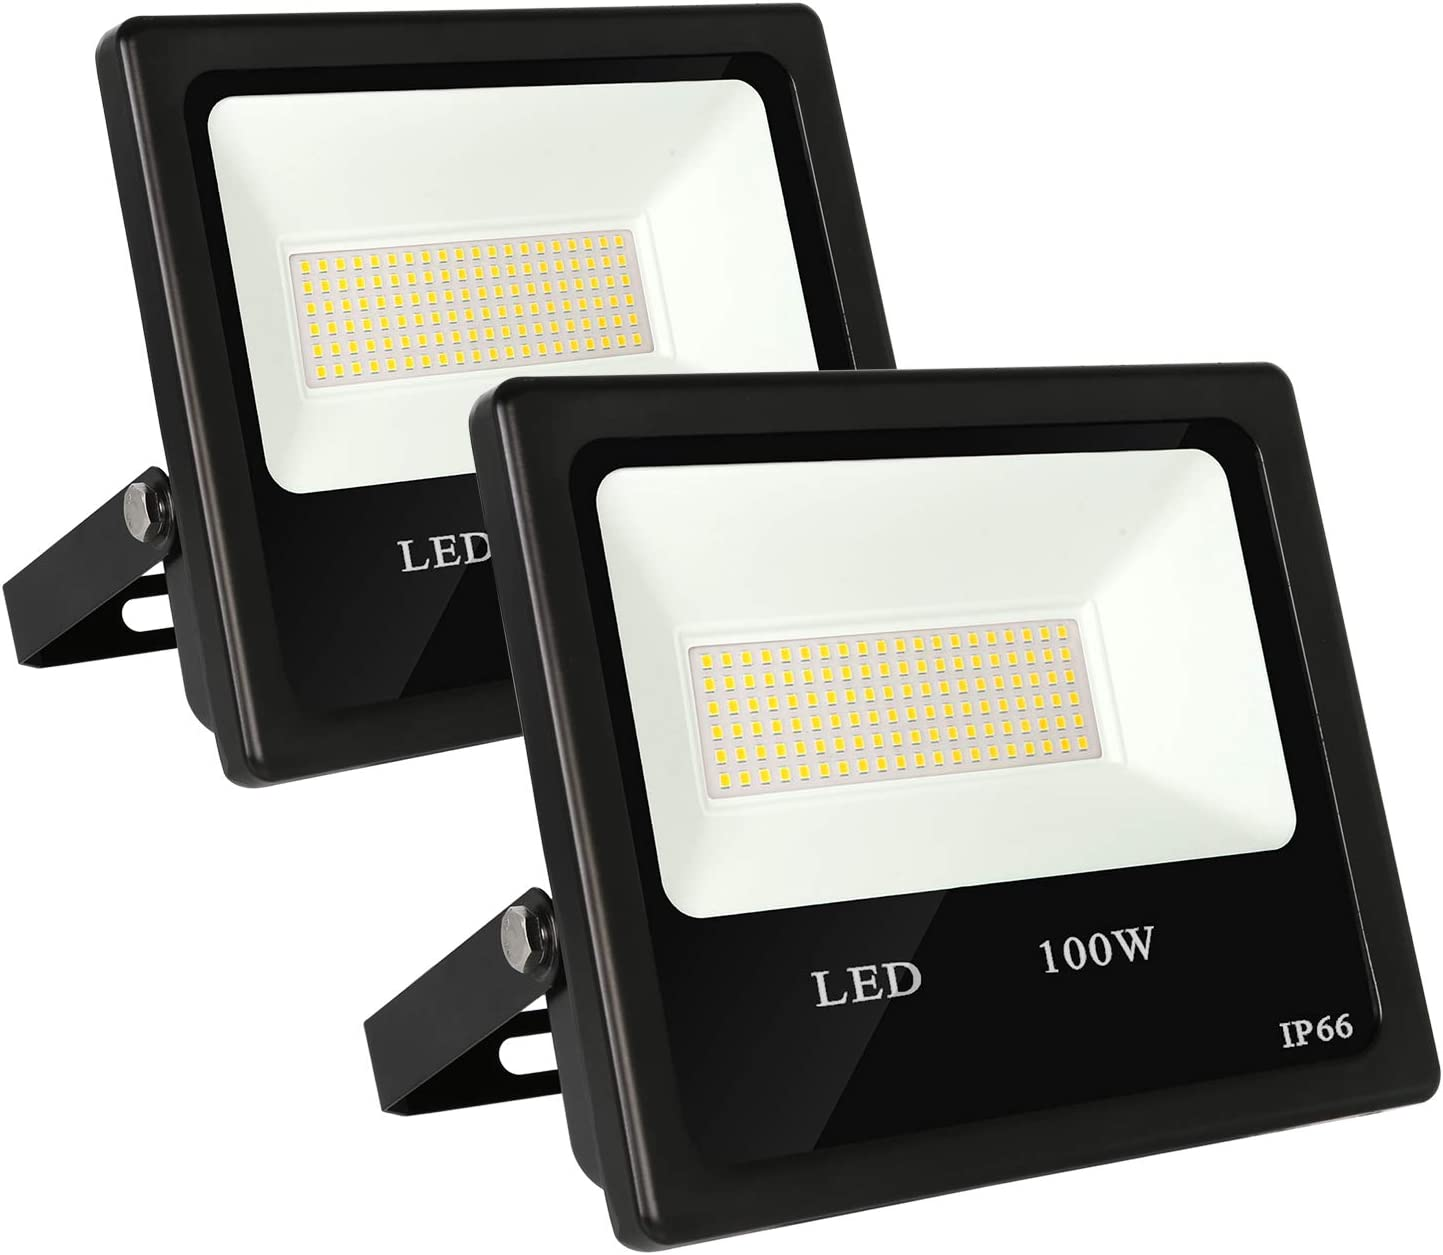 100W LED Security Flood Light, 11000lm Super Bright Work Light, 5000K [500W MH Equivalent], IP66 Weatherproof Parking Lot Lighting Fixture for Garage, Garden, Lawn and Yard - 2 Pack